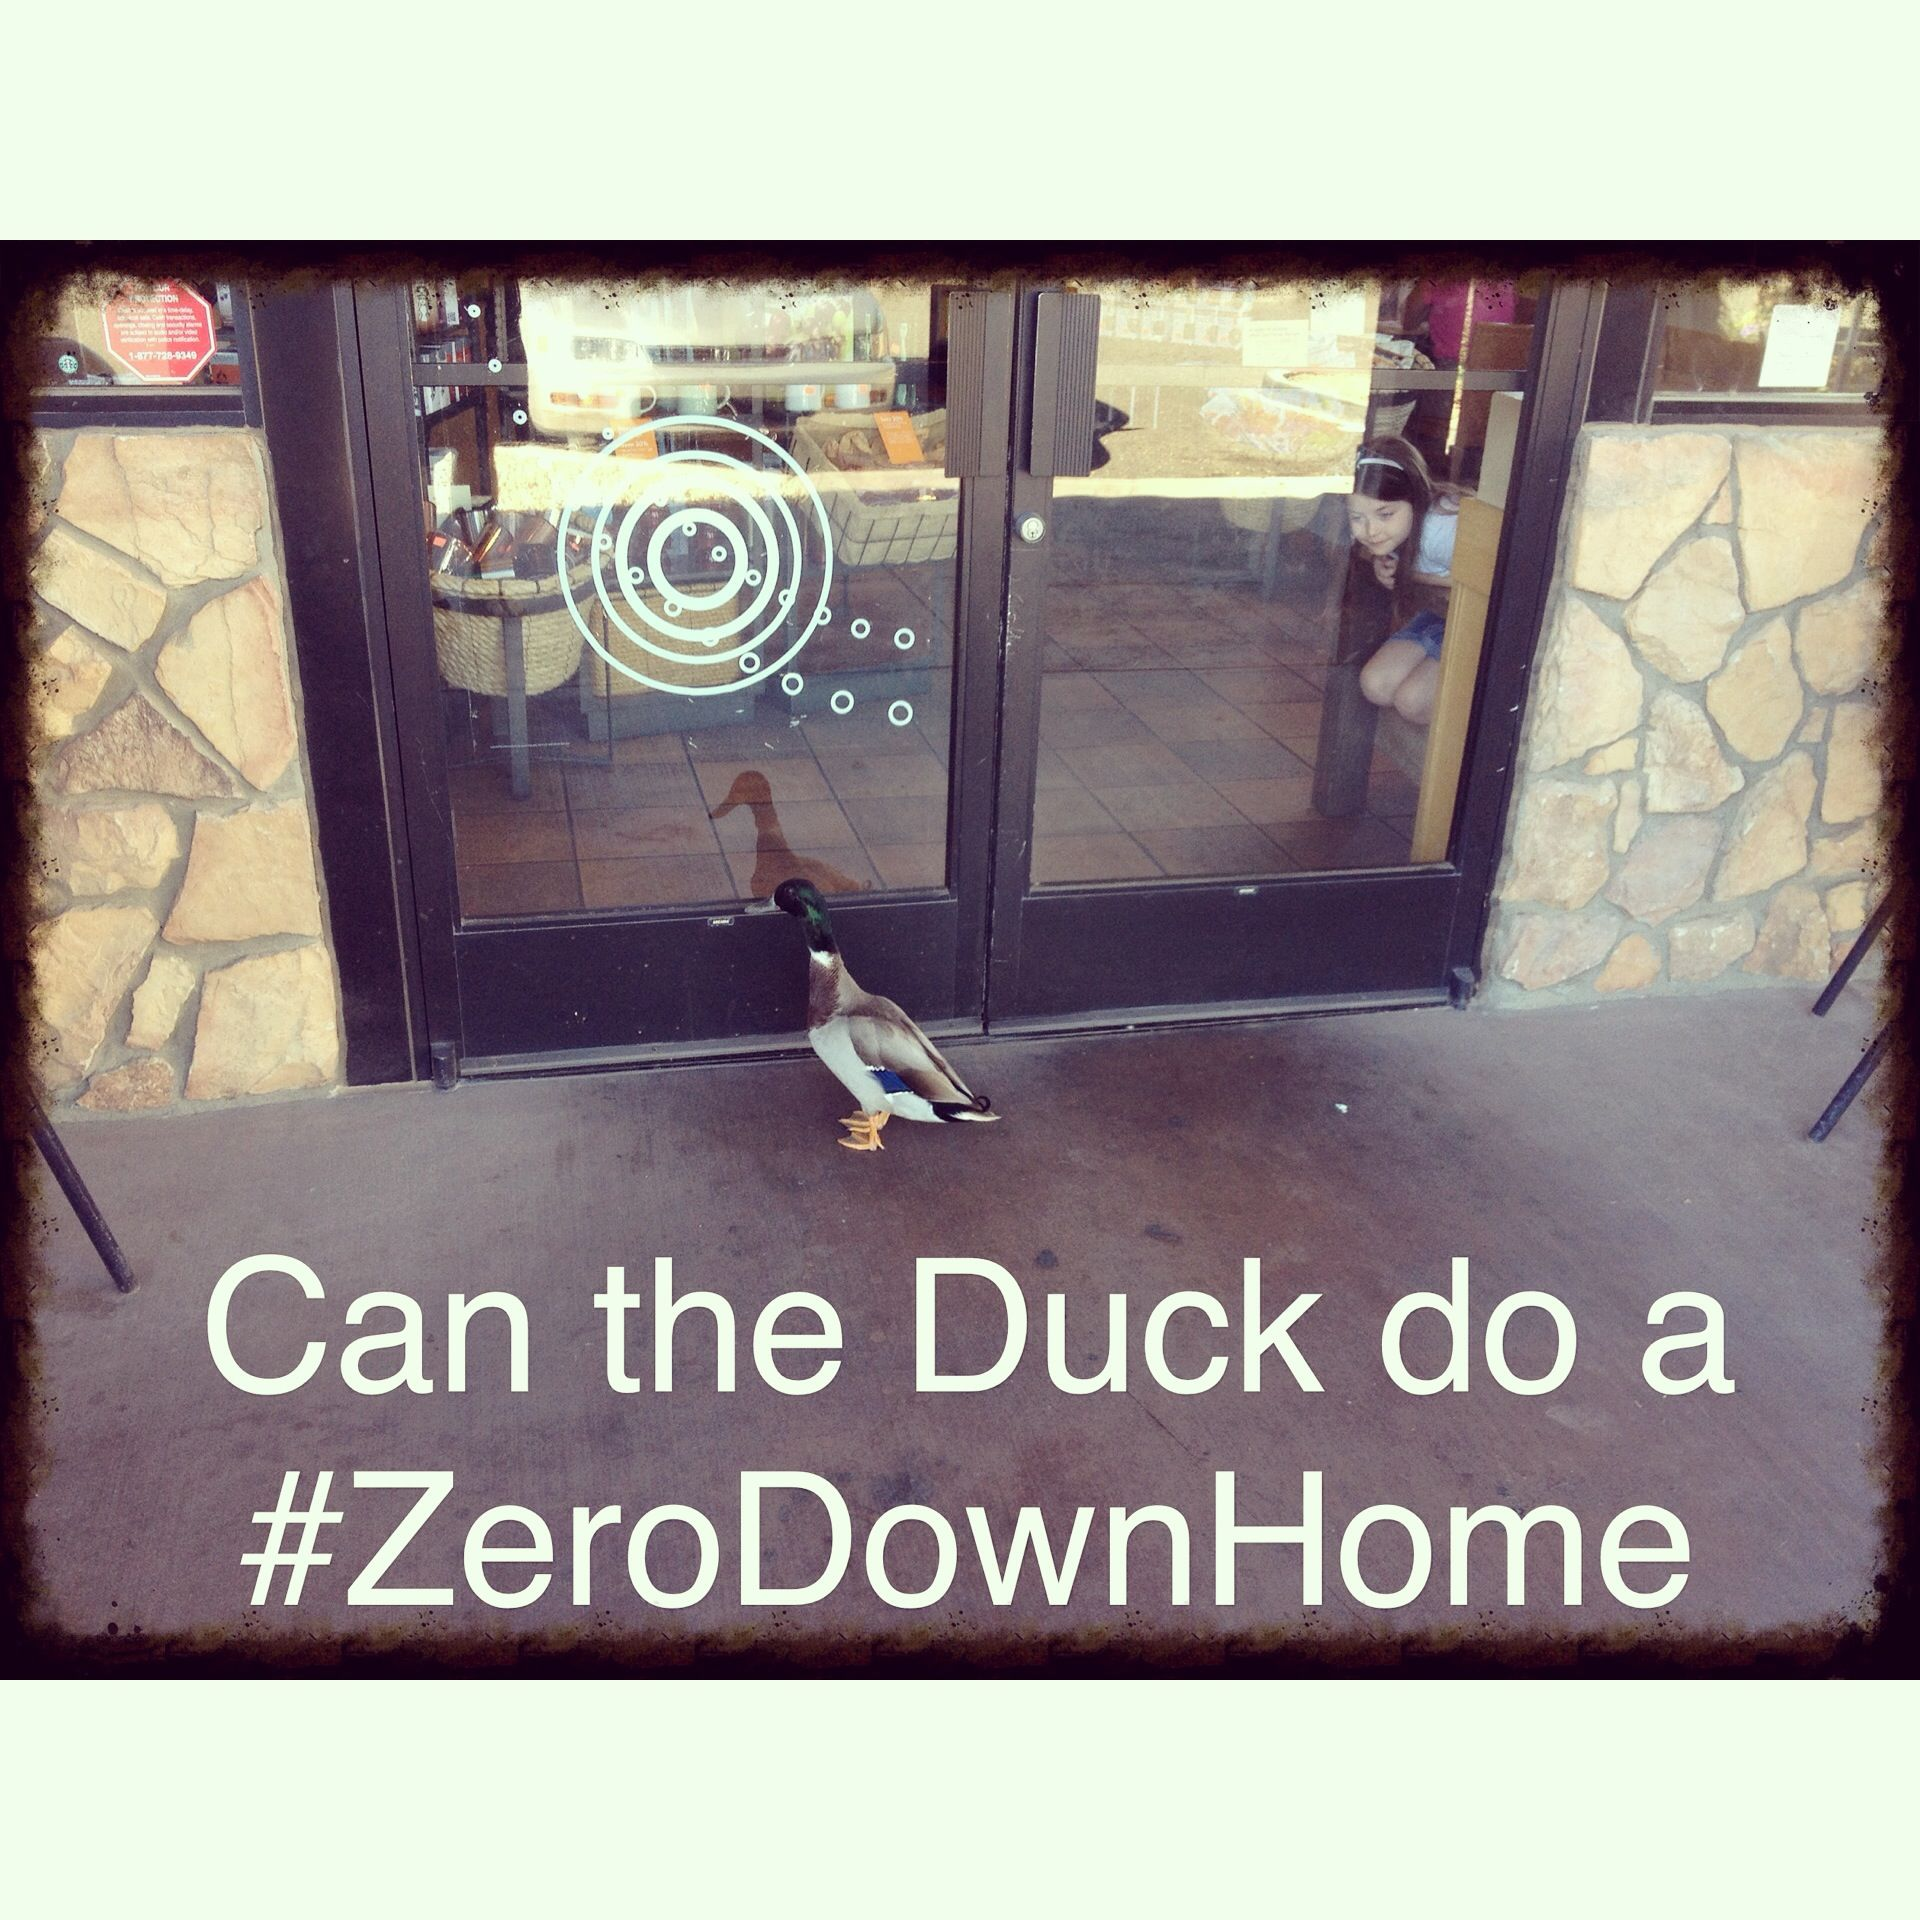 I Went To Starbucks The Other Day And The Duck Was Trying